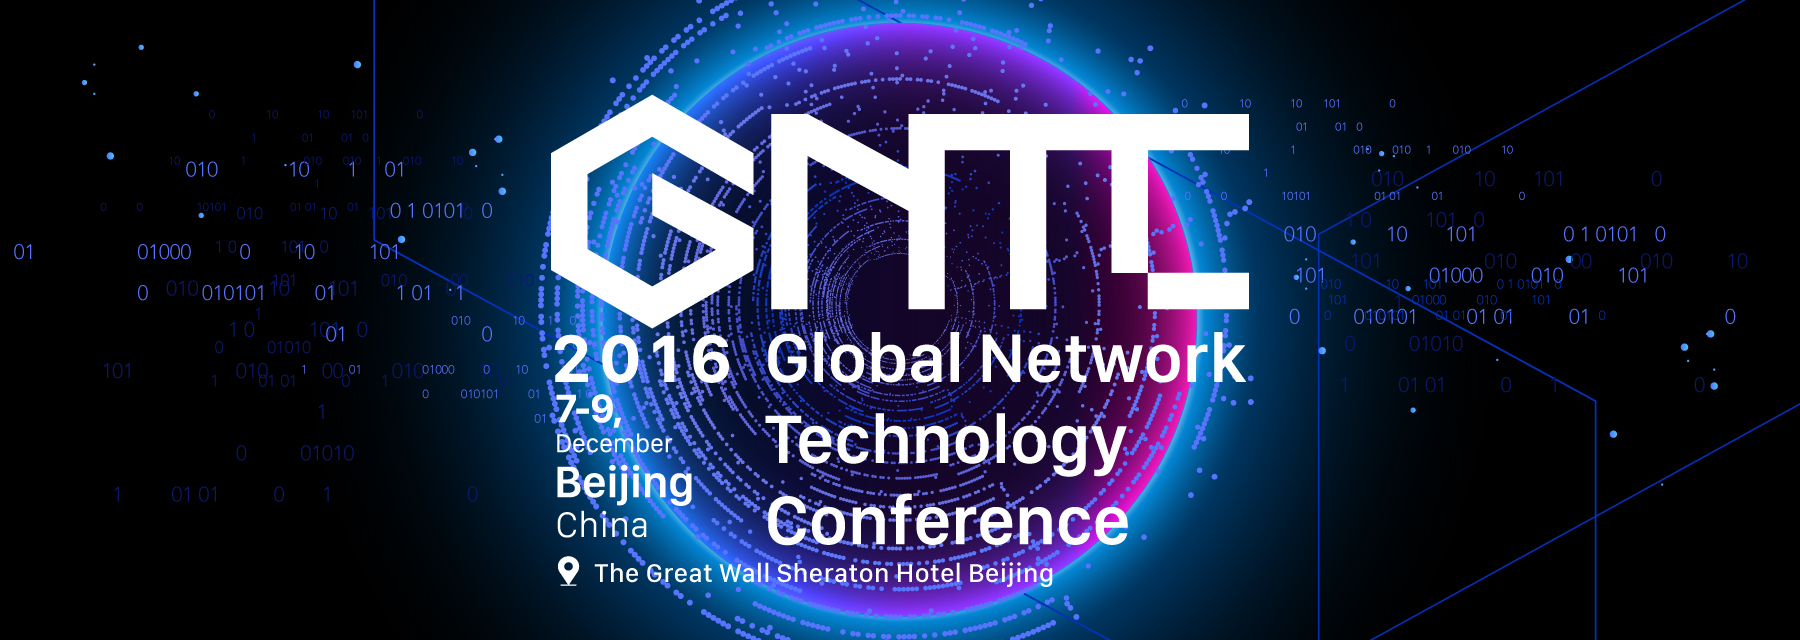 GNTC - Global Network Technology Conference